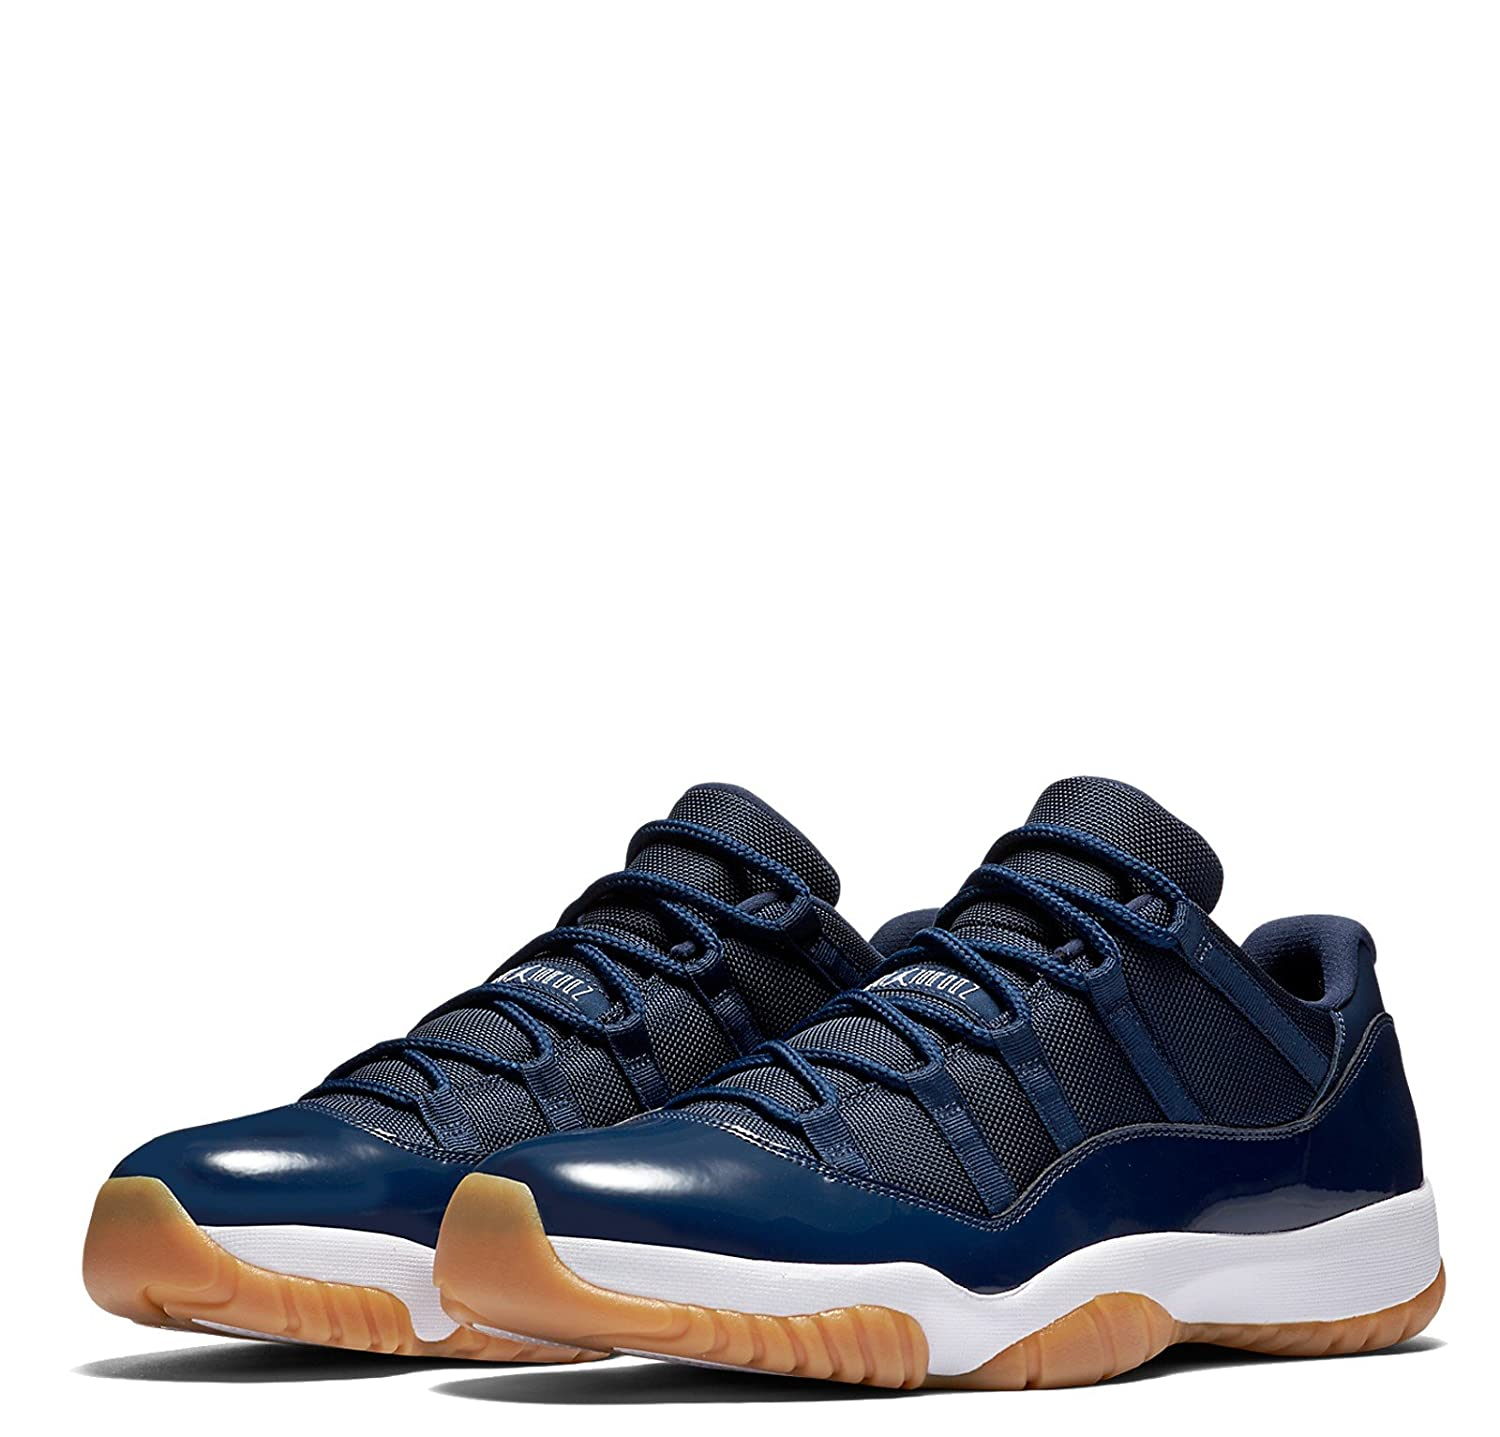 brand new fcb9b 5f59a Jordan Men Air 11 Retro Low (Midnight Navy/White-Gum Light Brown)